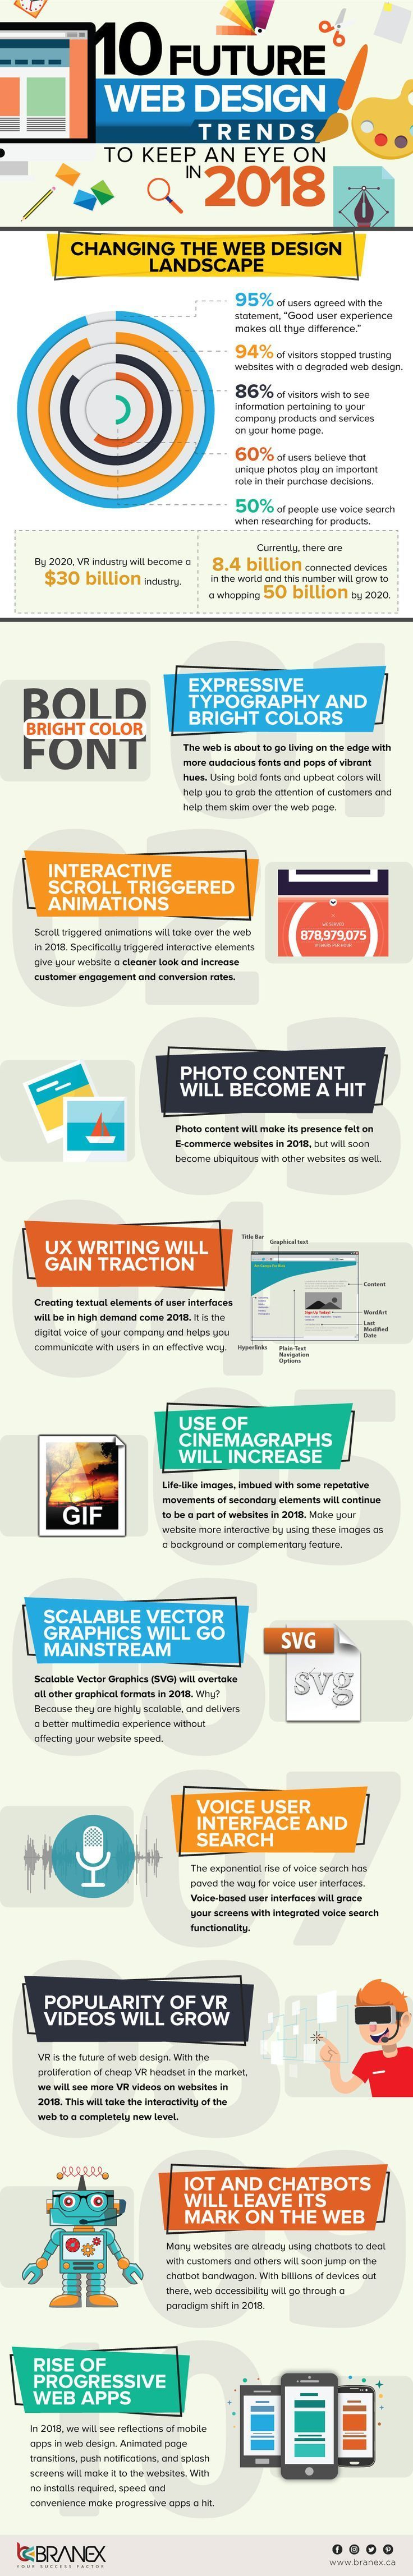 How To Design A Website The 4 Stages Process Web Design Tips Web Design Trends Web Development Design Web Design Tips